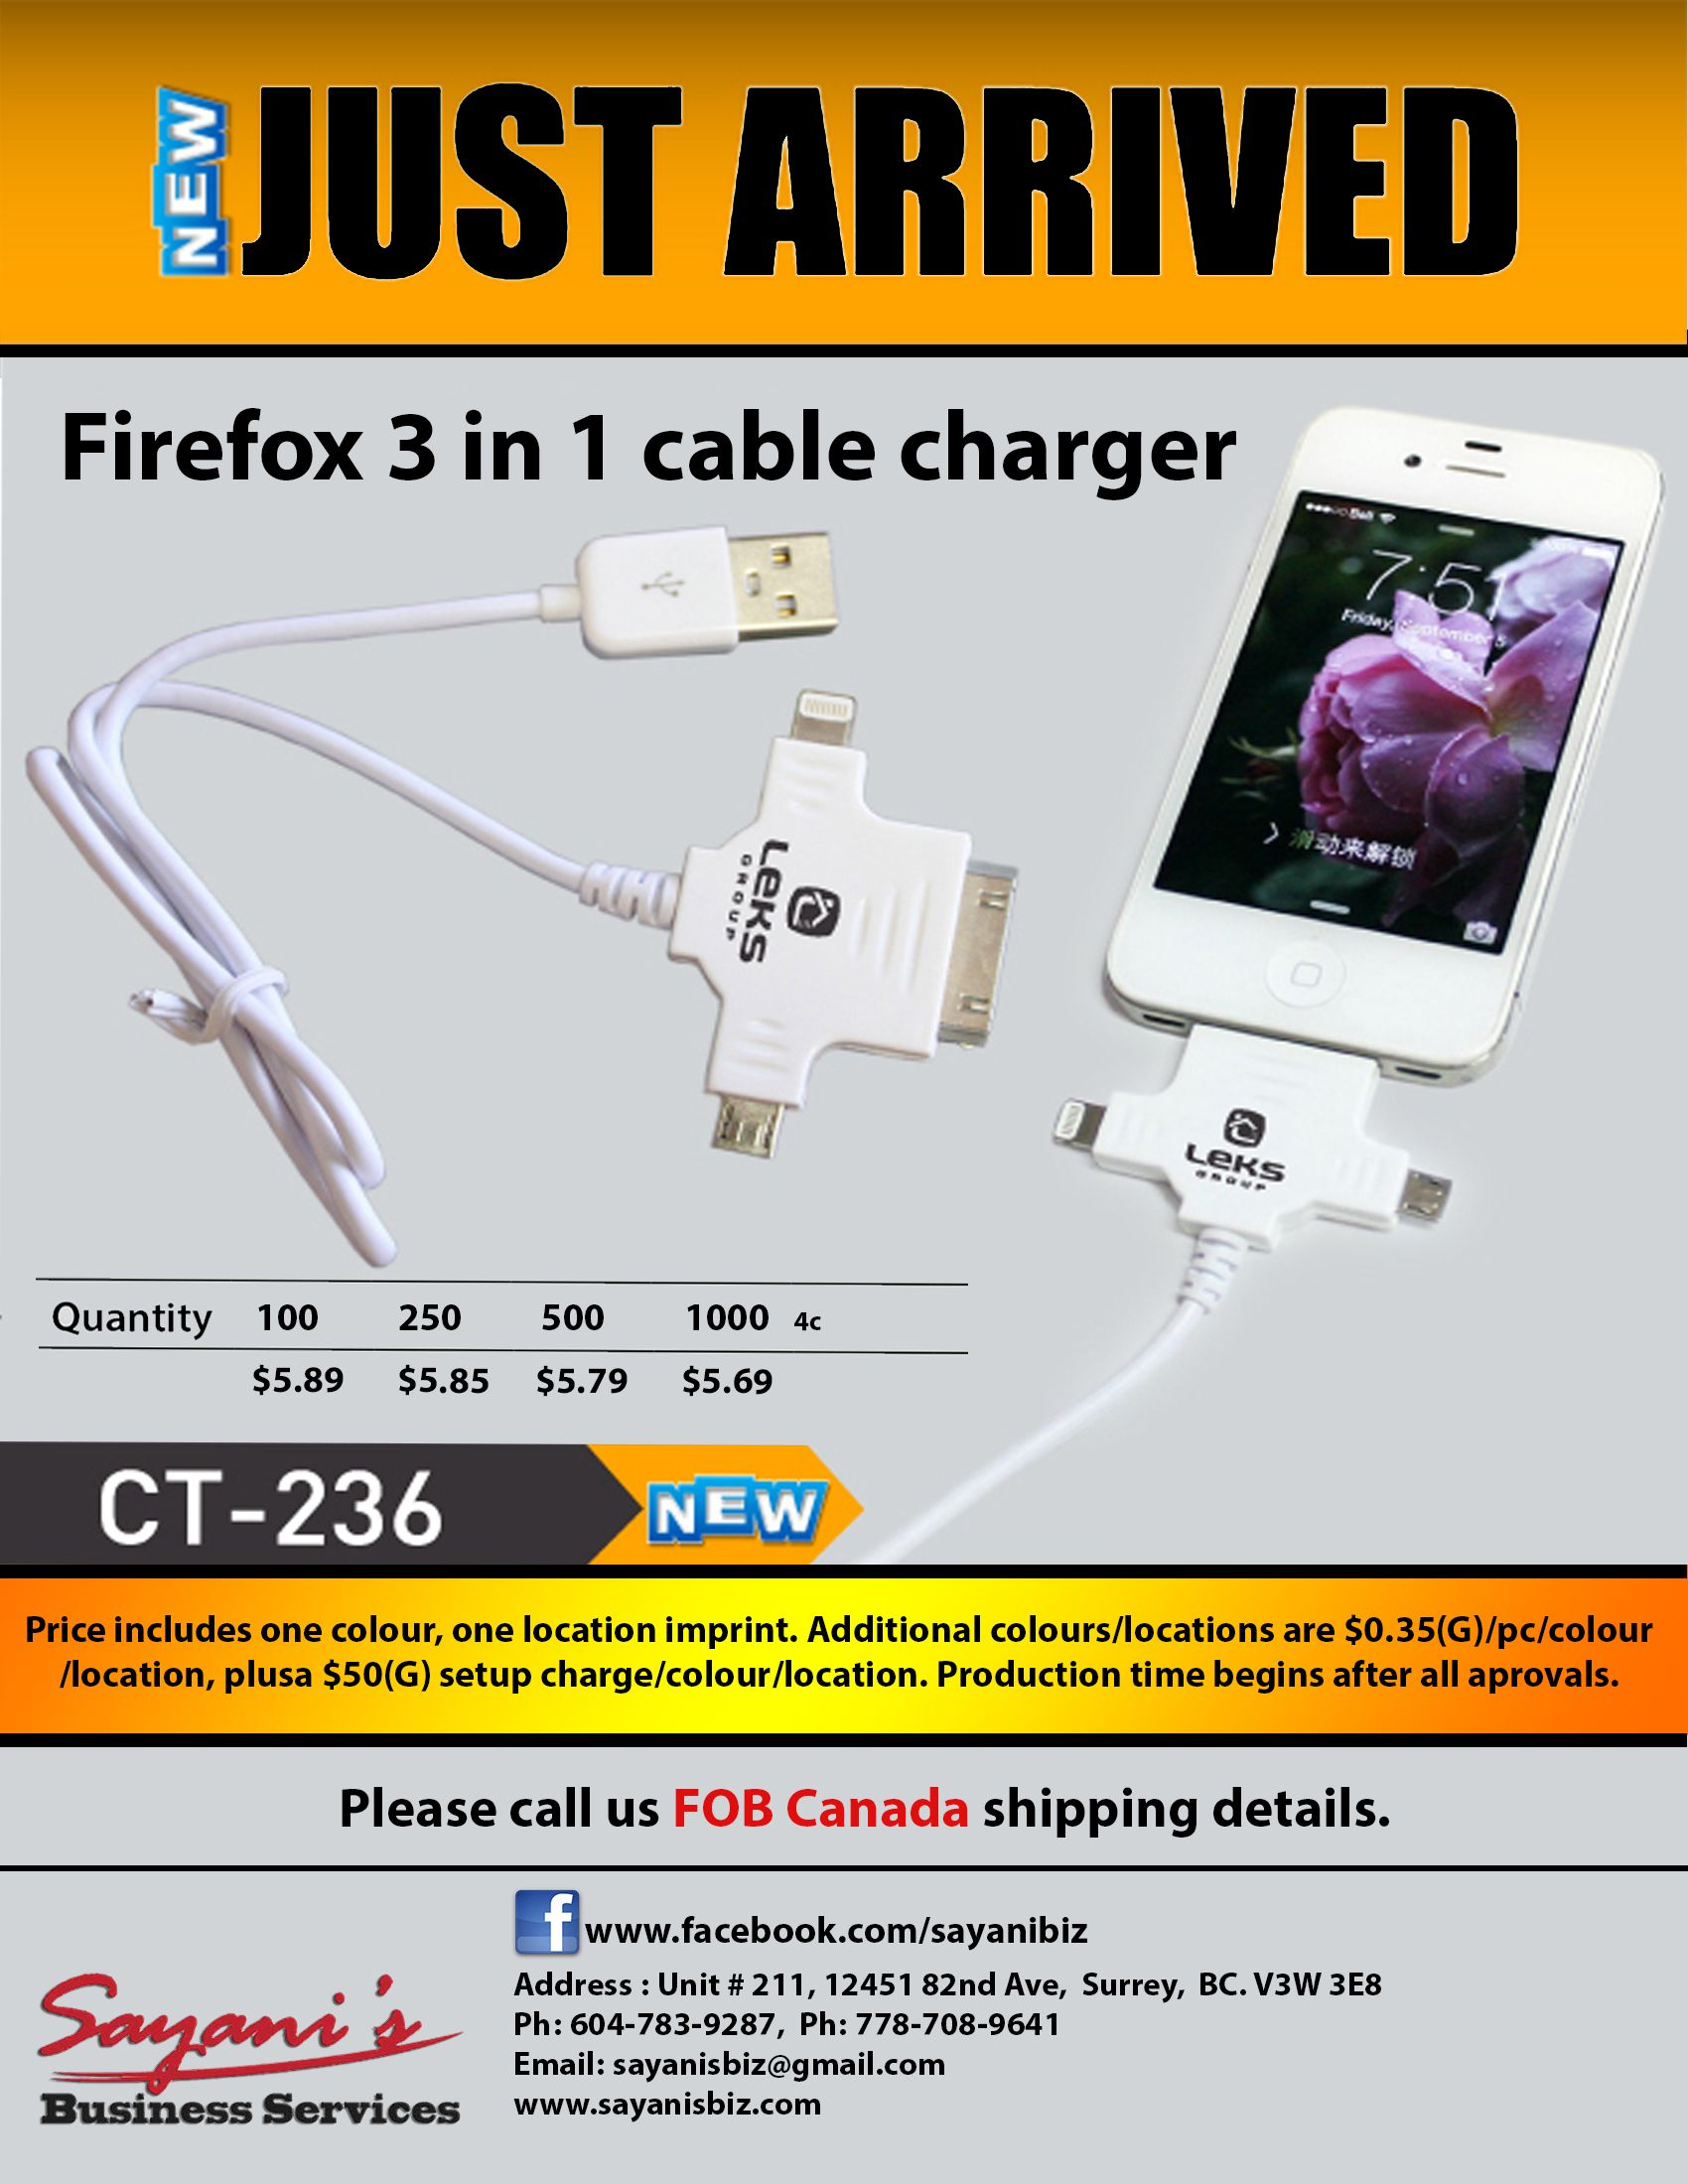 Get Firfox 3 in 1 cable chargers ...  Sayani's Business Services provides the best quality products as you want!